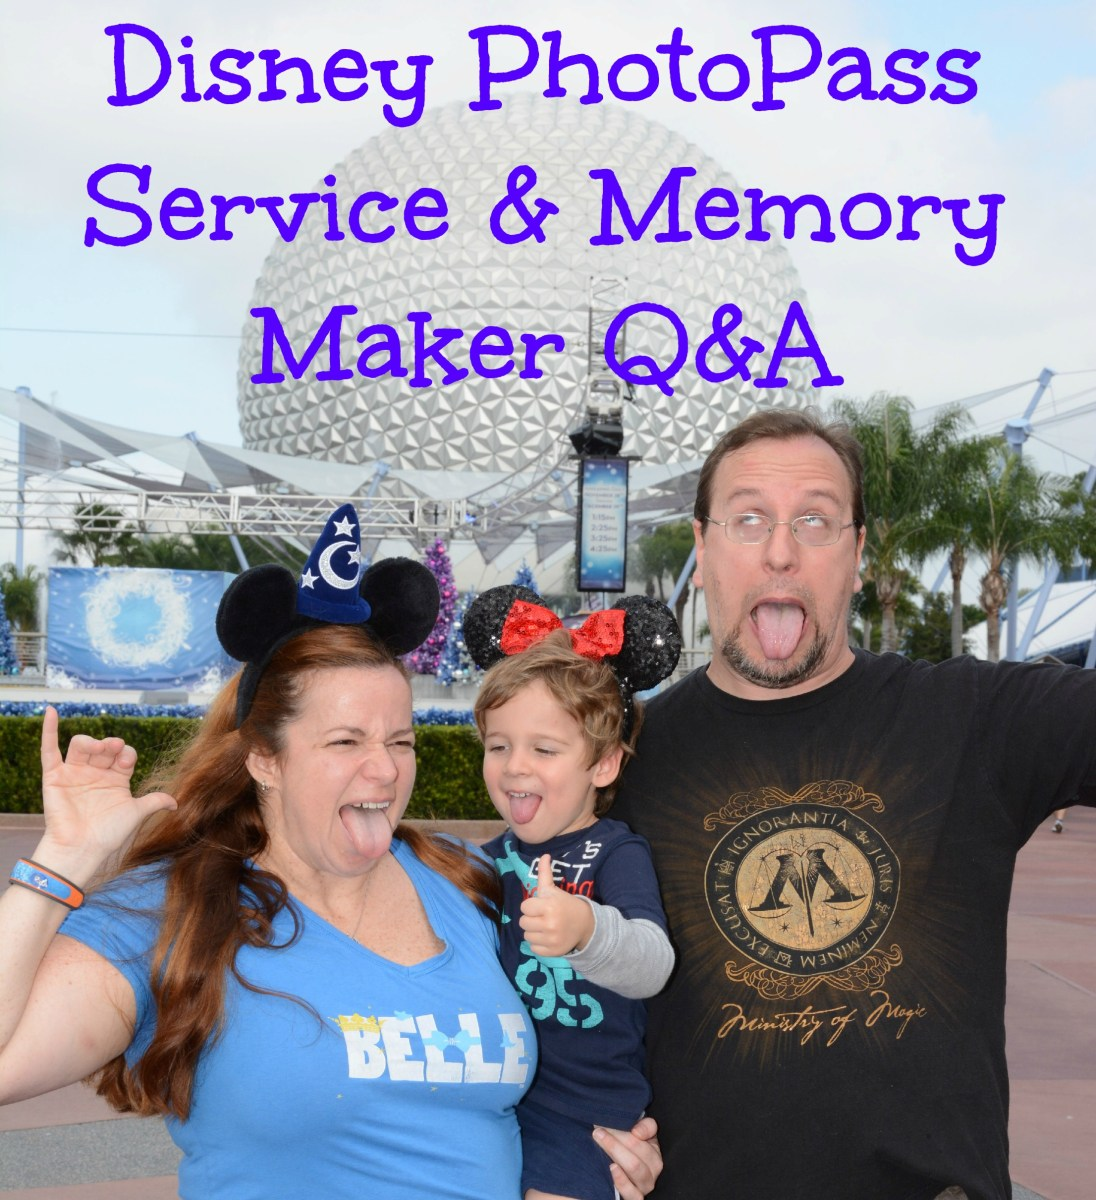 Disney PhotoPass and Memory Maker Q&A